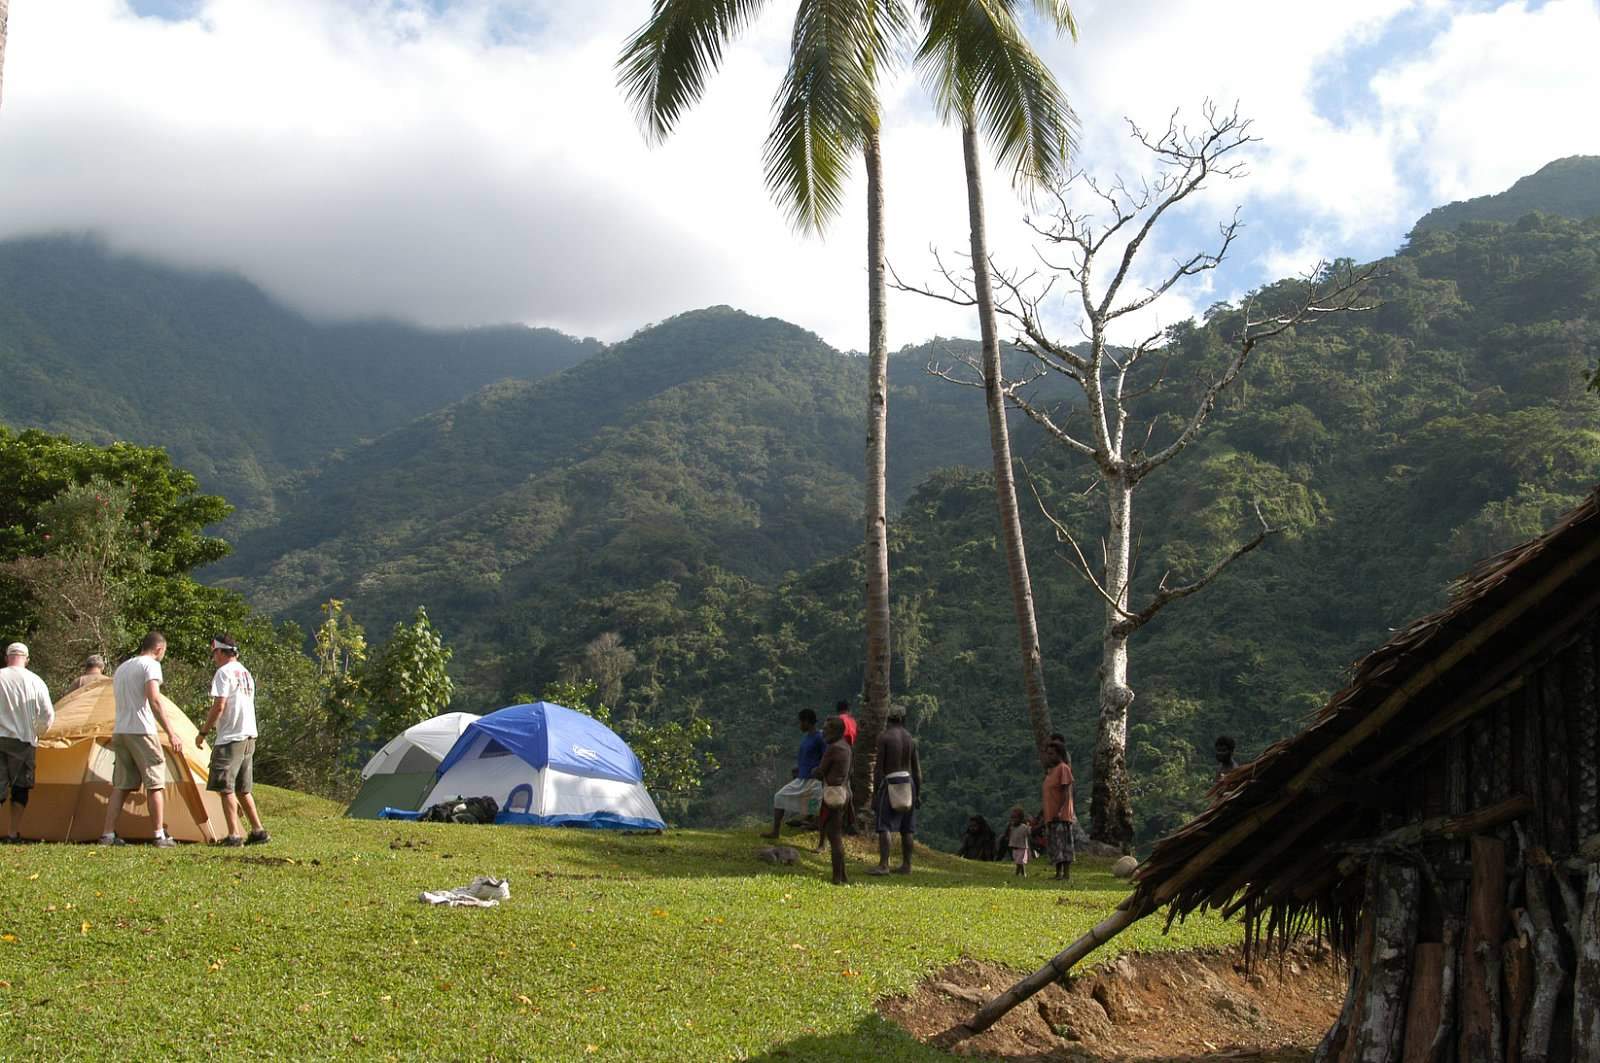 - June 2007, Maljia Village with Mount Tabwemasana (where plane was found)in background. Base camp in the sky. (Photo provided by Kim Anderson.)